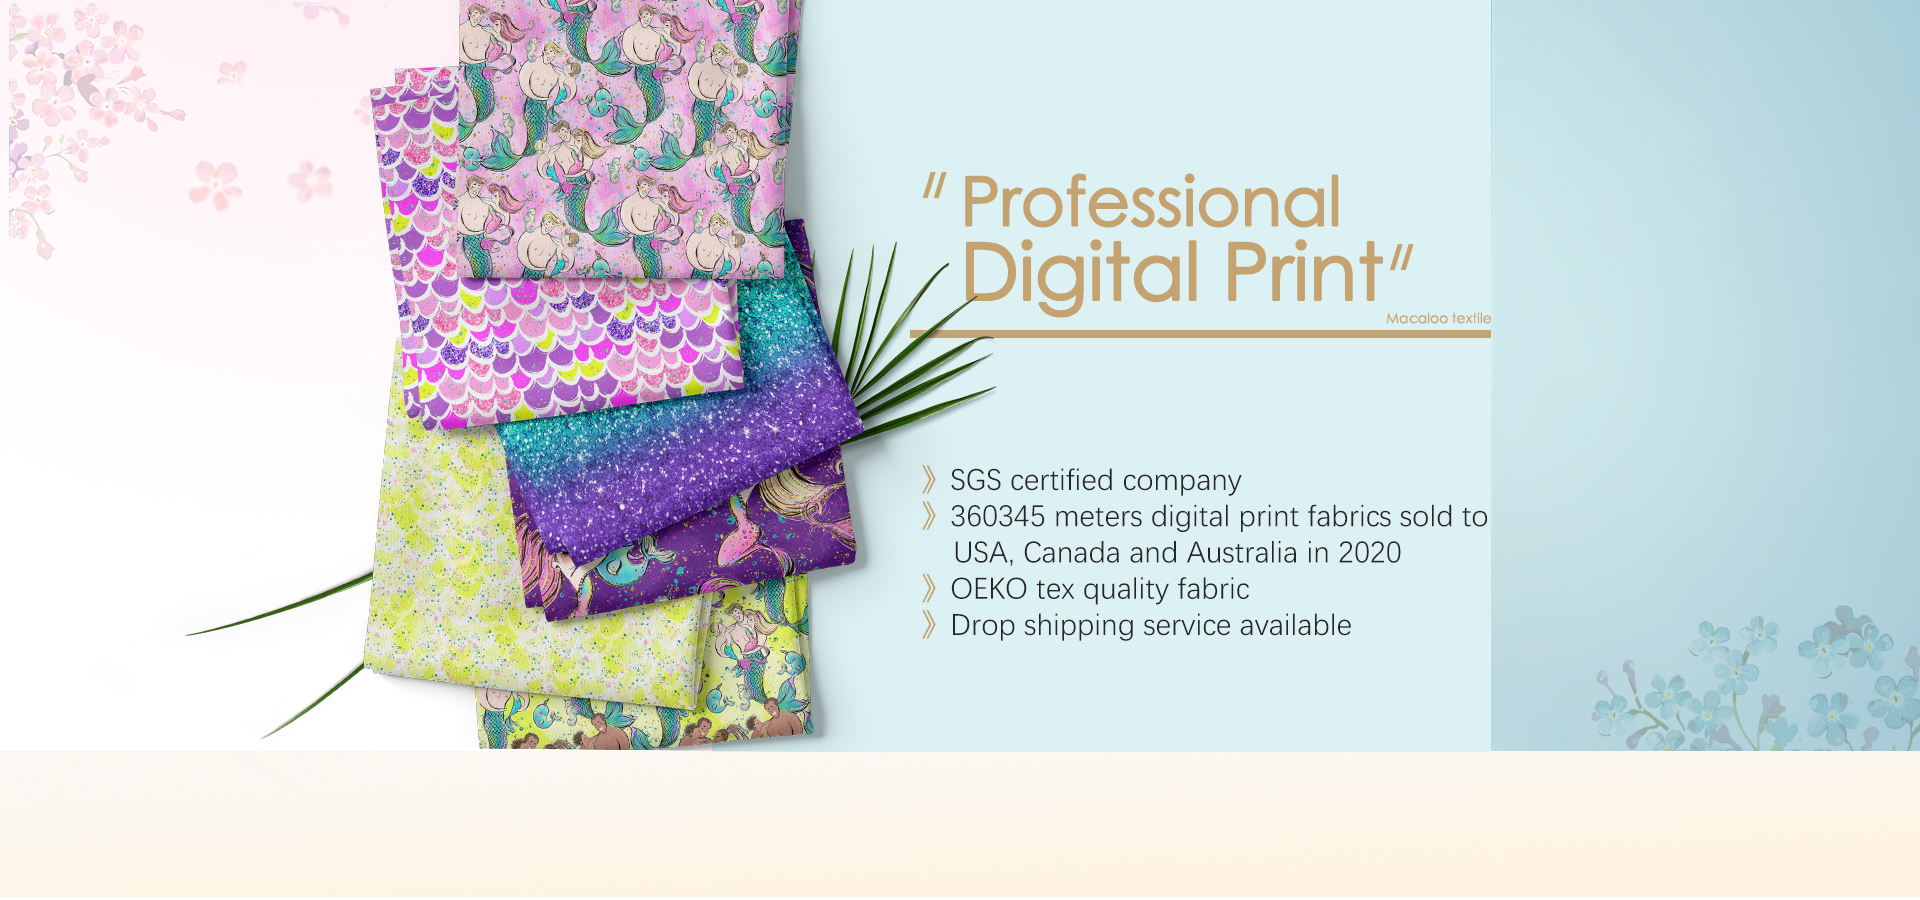 Macaloo specialized in custom digital printed fabric